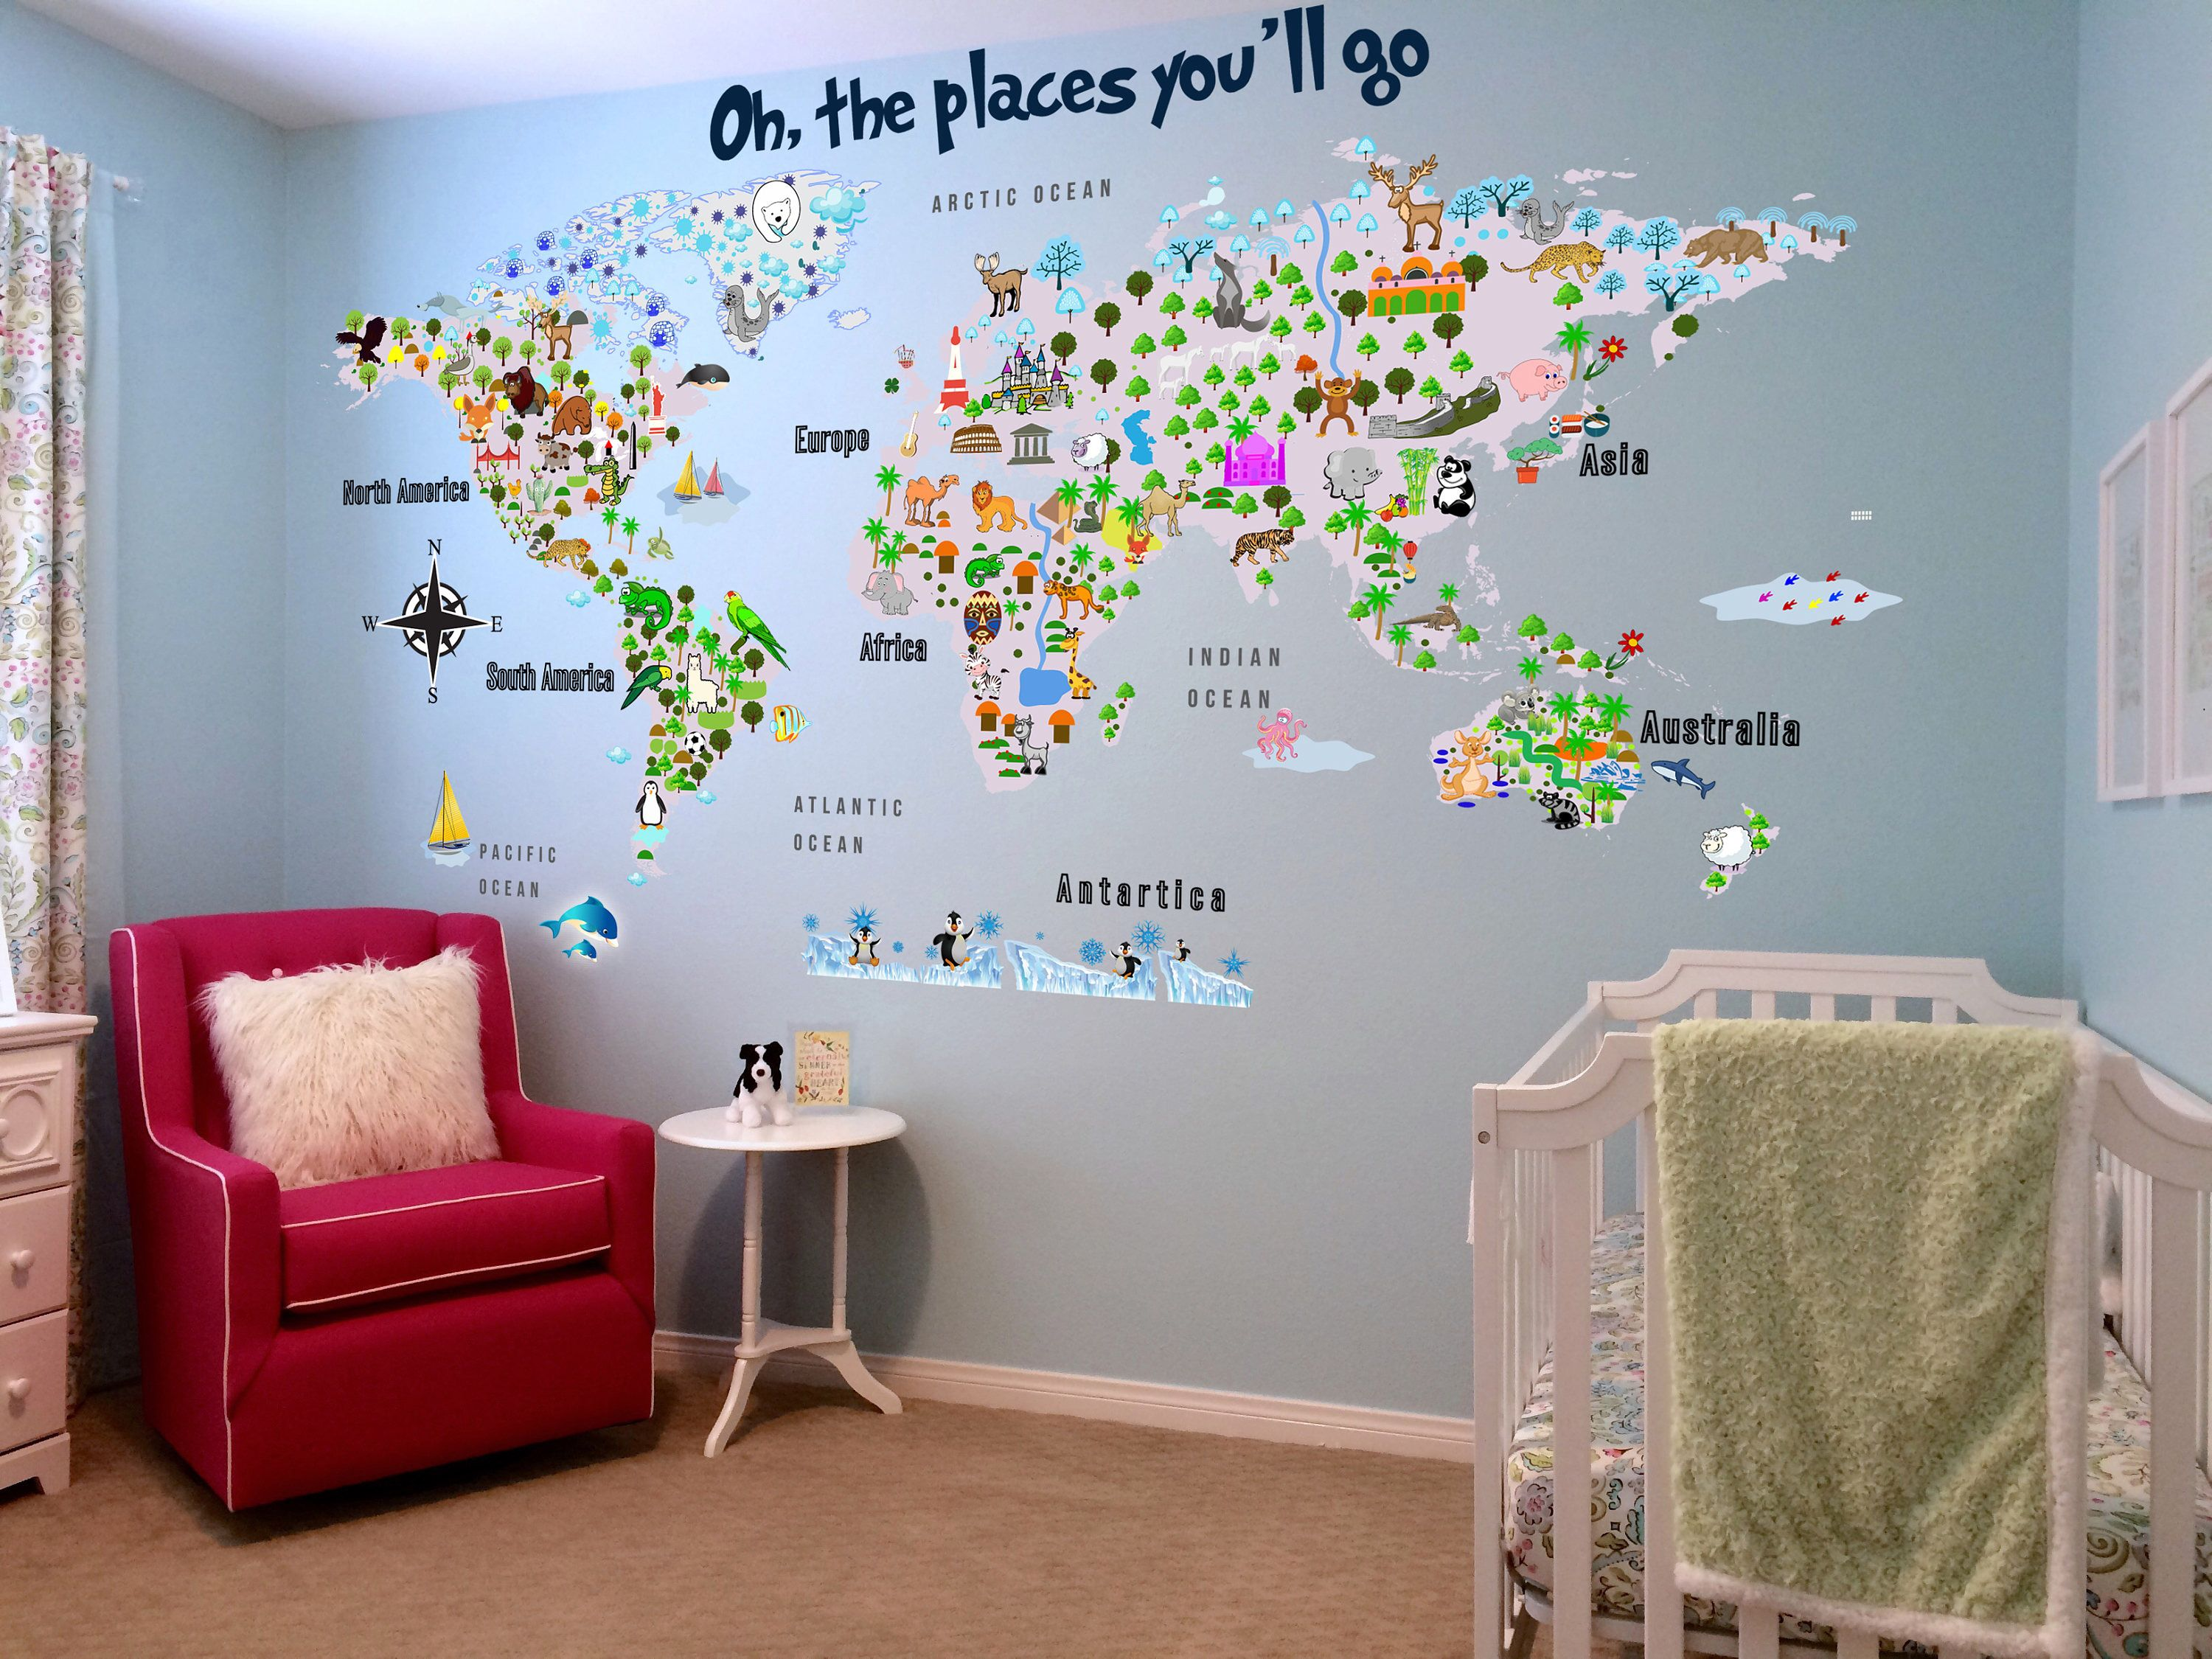 Animal map cultural world map wall decal reusable vinyl fabric animal map cultural world map wall decal reusable vinyl fabric repositionable decal nursery room decals clear decals gumiabroncs Gallery